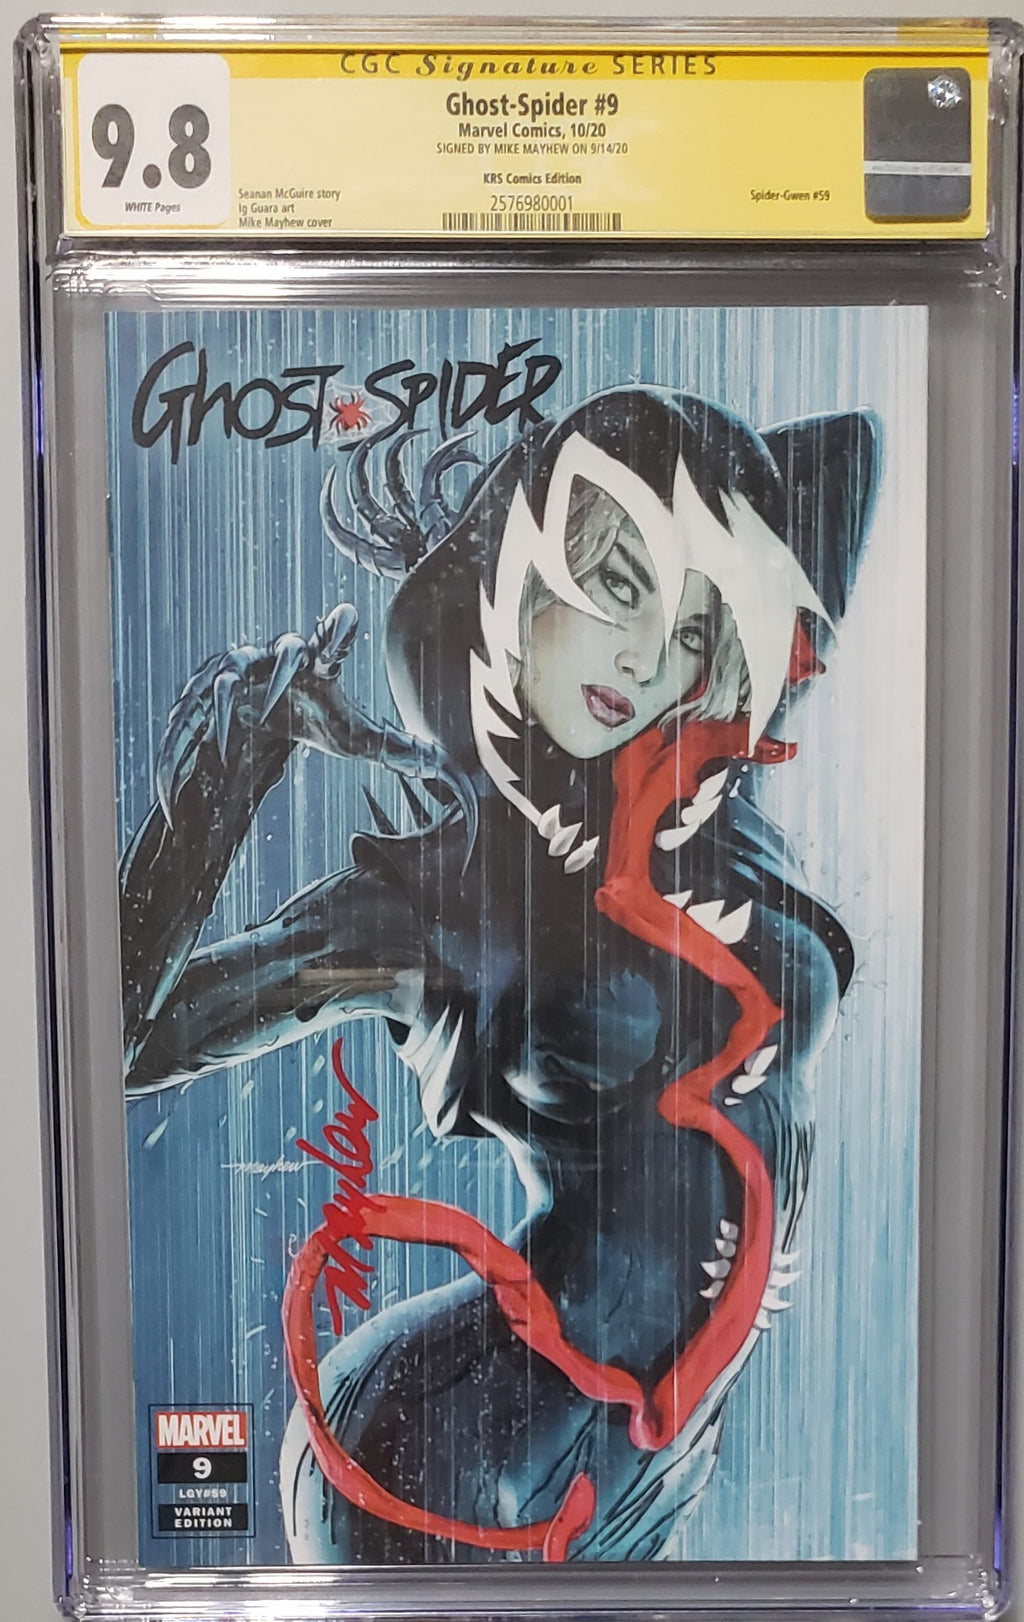 GHOST SPIDER #9 MIKE MAYHEW EXCLUSIVE COVER A CGC SIG SERIES 9.8